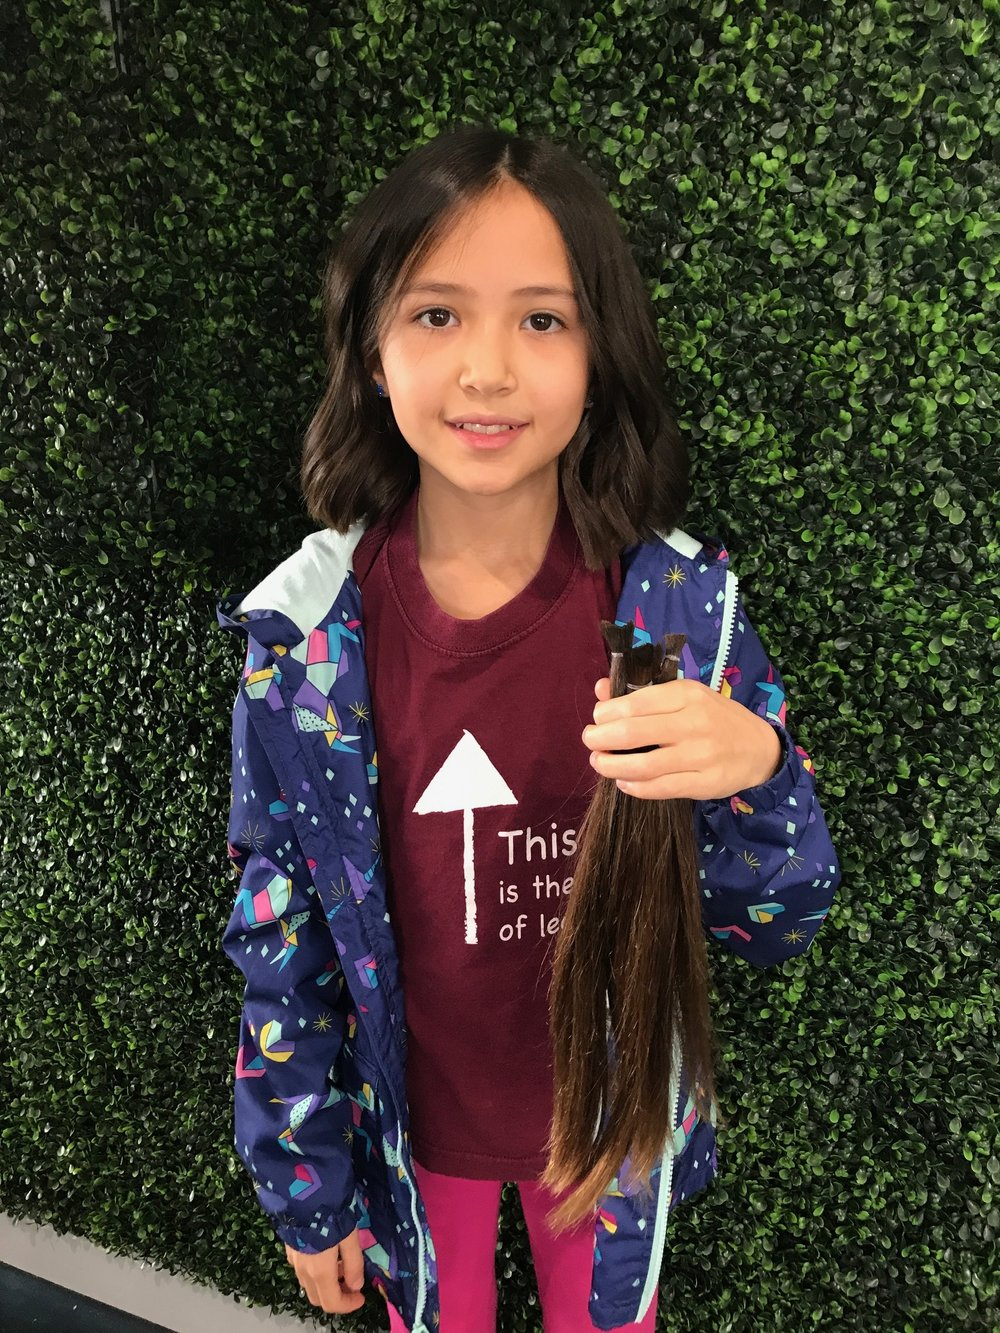 She donated 4 ponytails that were 12.5 inches long!